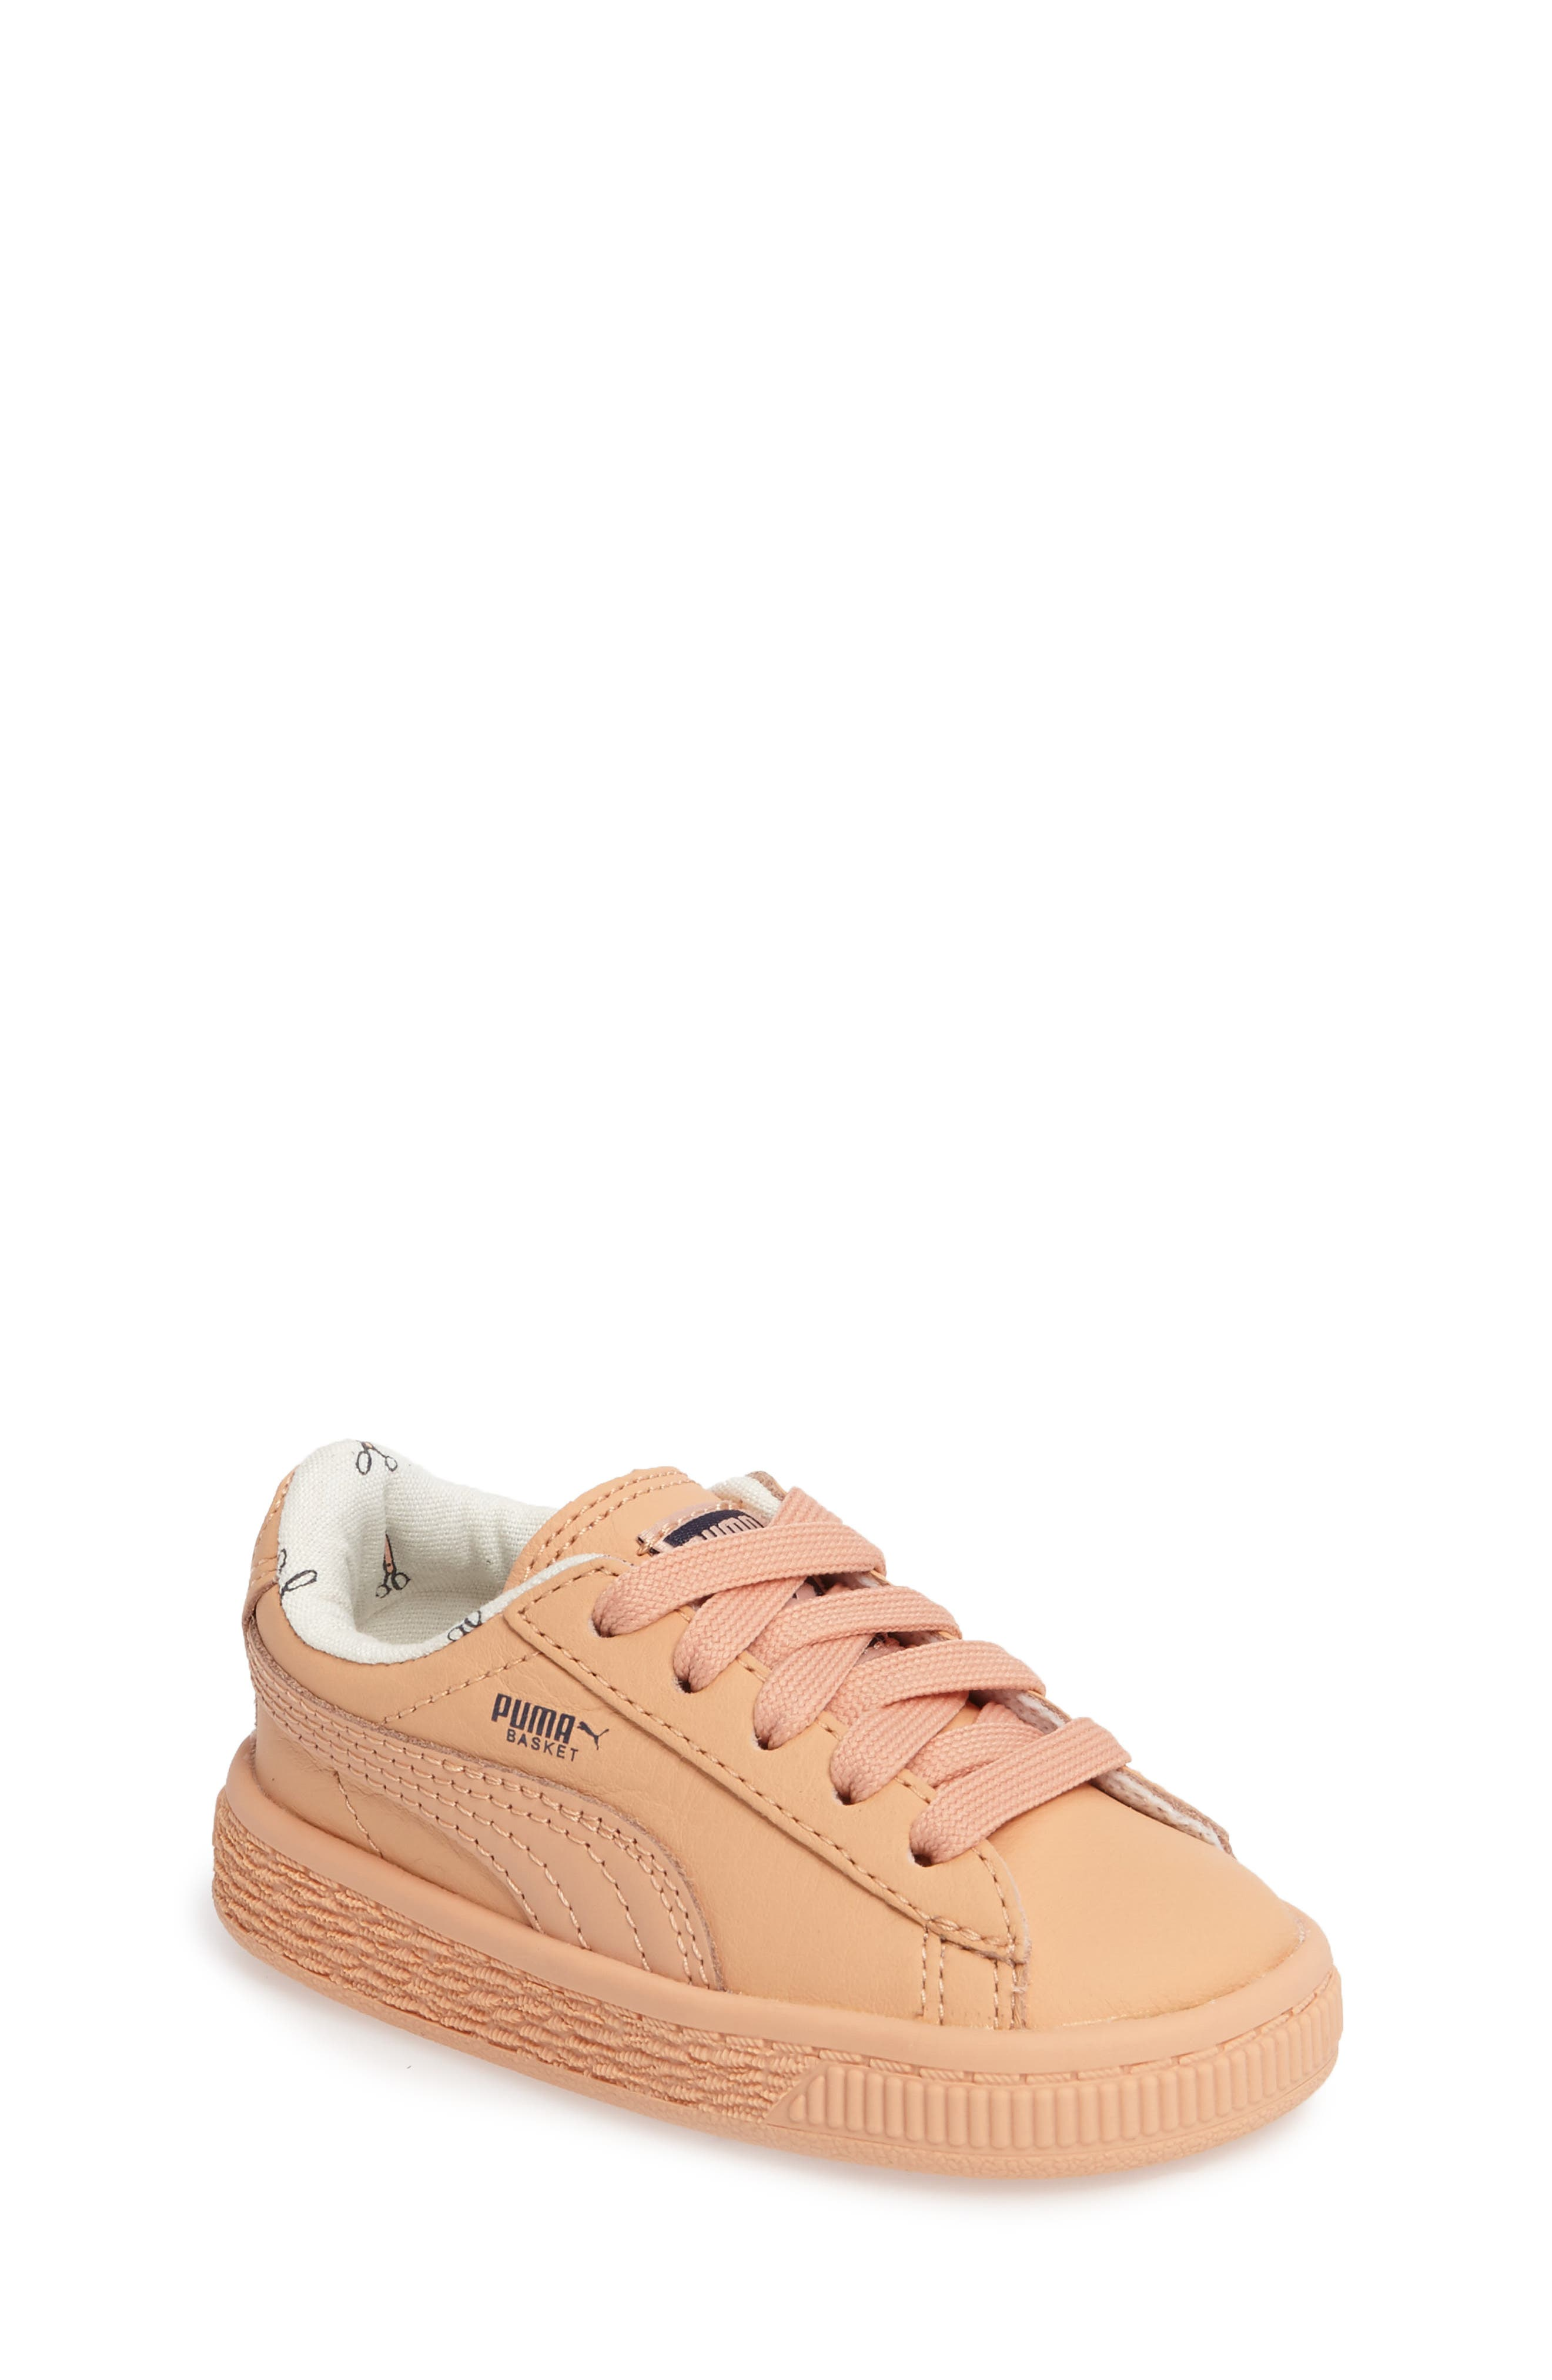 PUMA x tinycottons Basket Sneaker (Baby, Walker & Toddler)